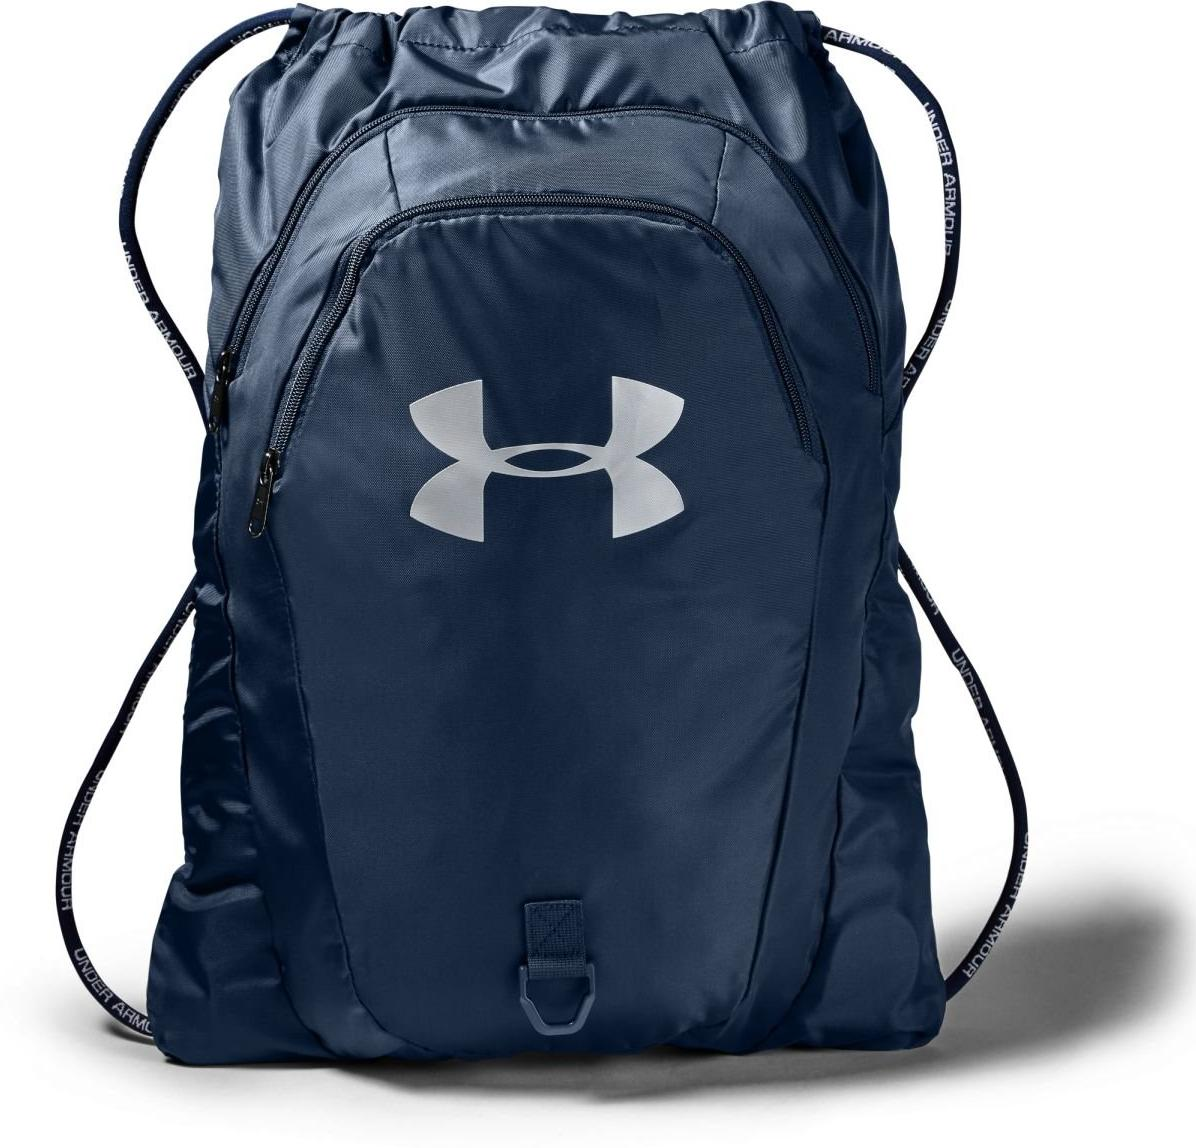 Sportbeutel Under Armour UA Undeniable 2.0 Sackpack